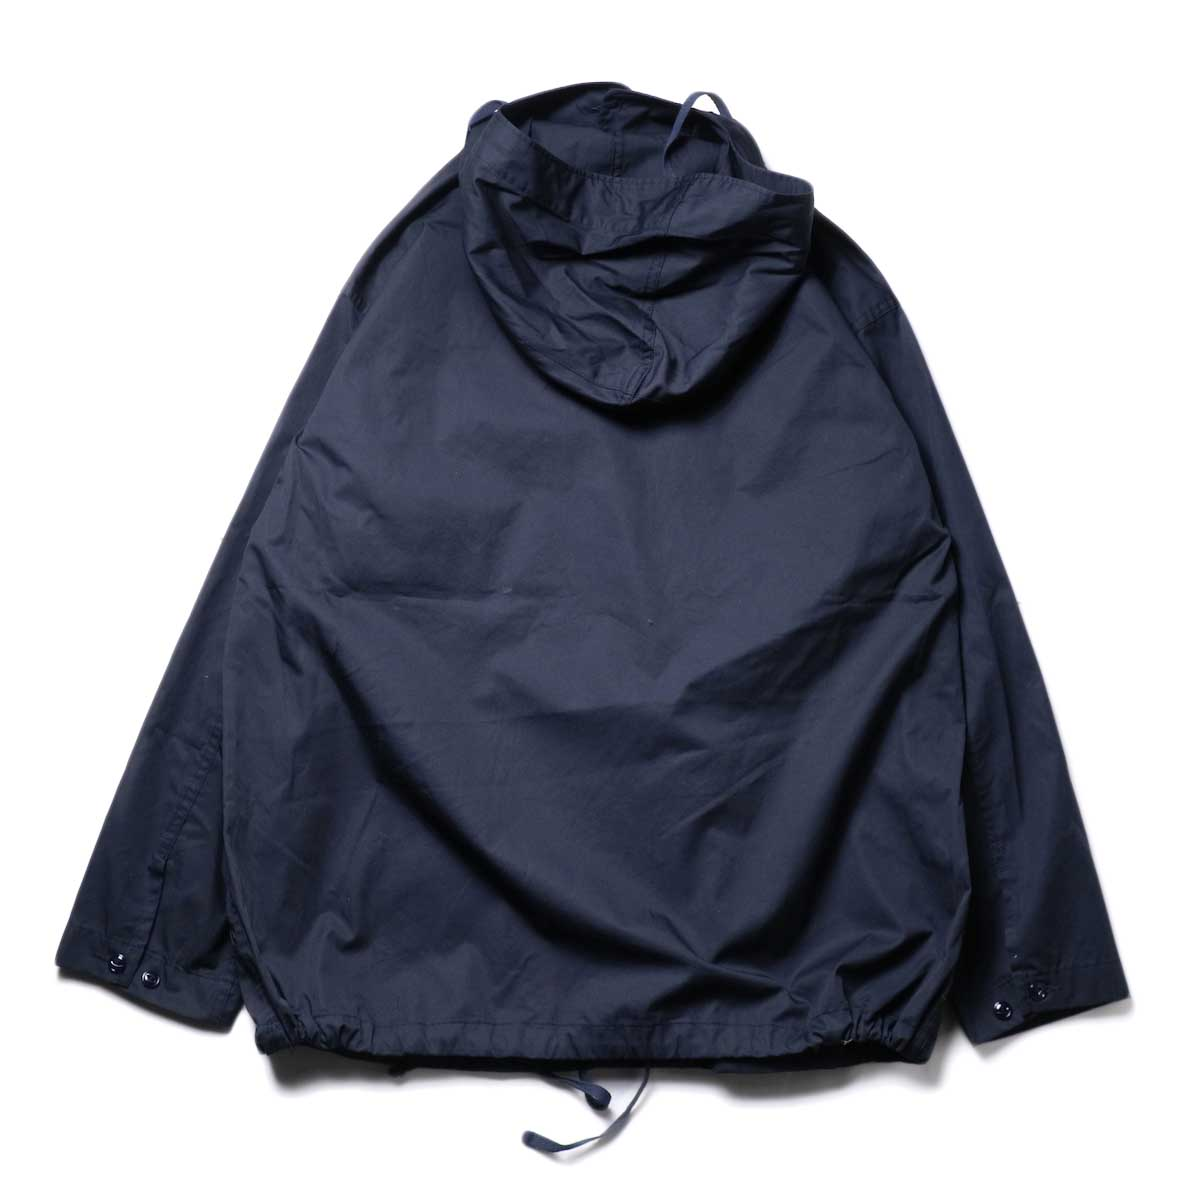 Engineered Garments / Cagoule Shirt -High Count Twill (Dk.Navy)背面